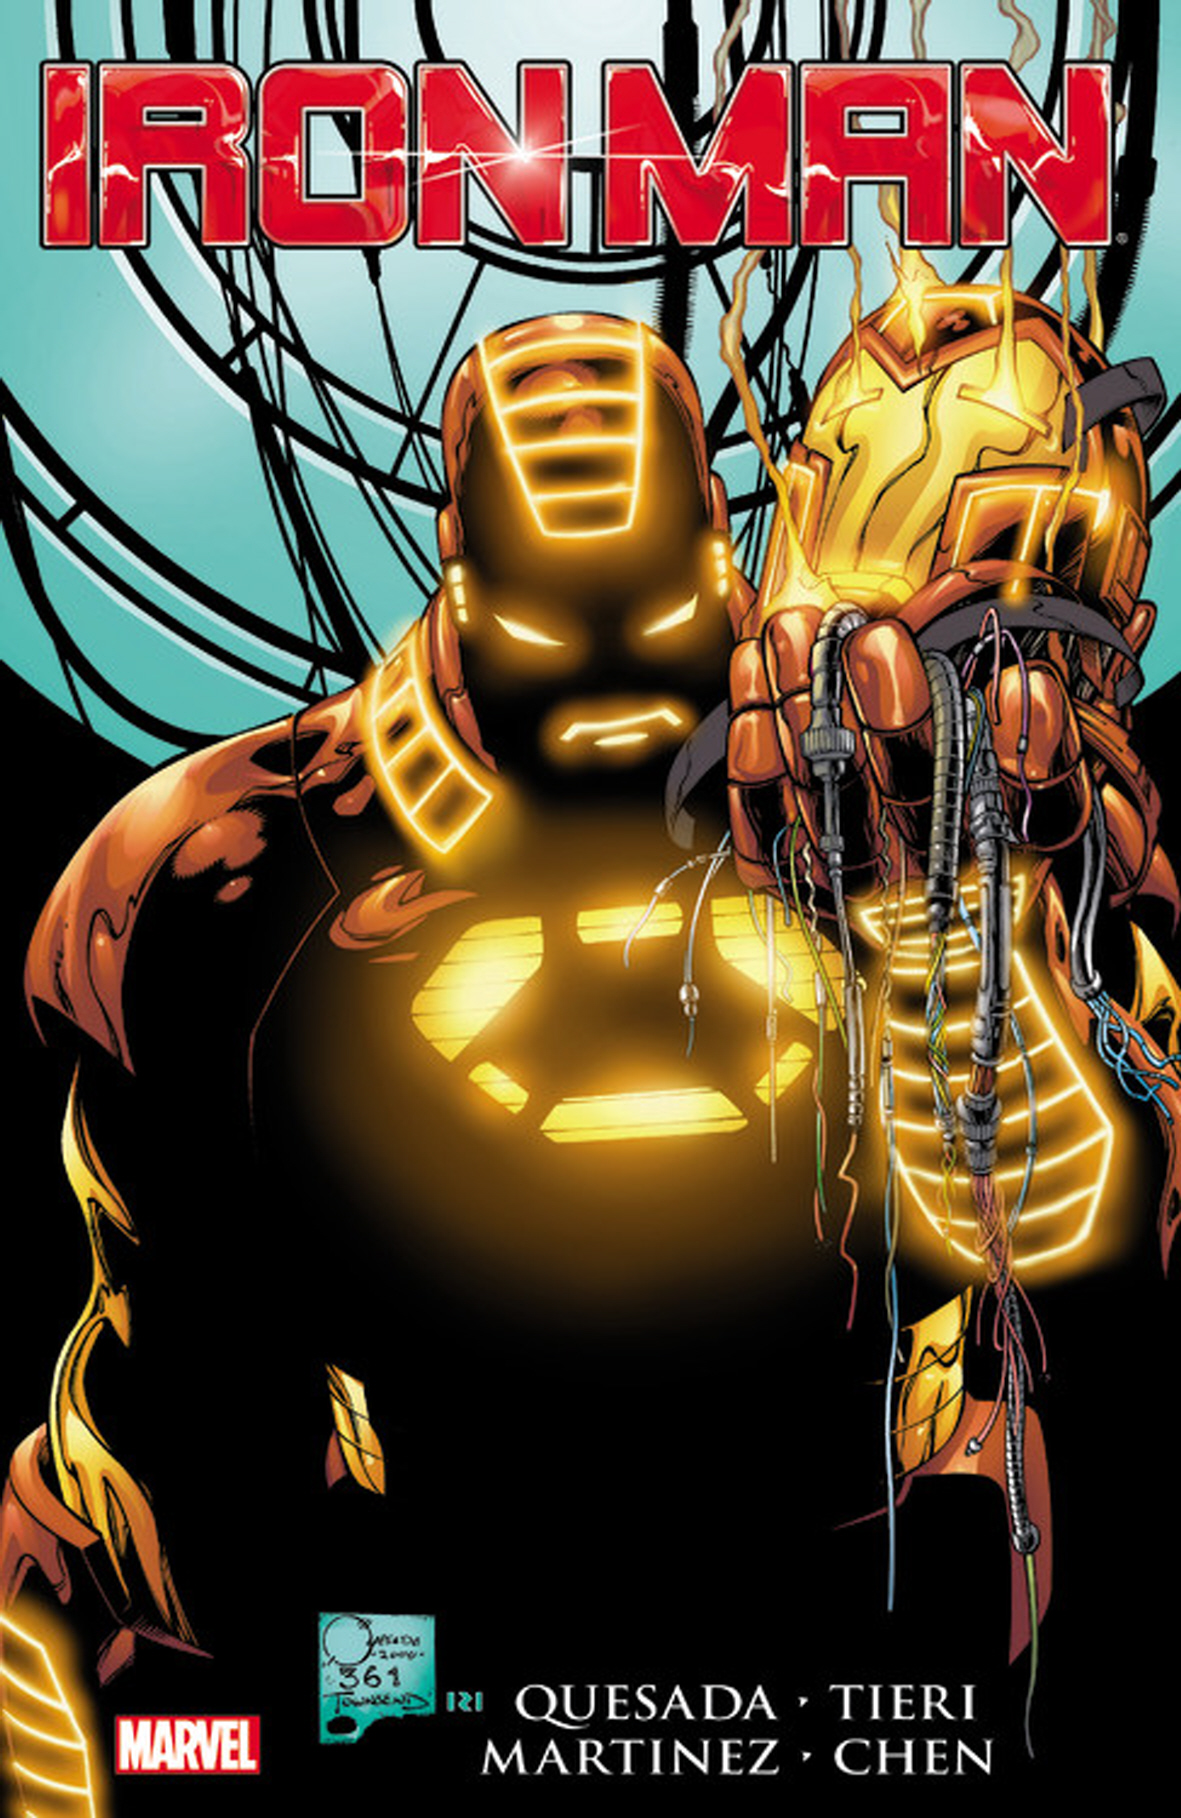 Iron Man by Joe Quesada by Paul Ryan, ISBN: 9780785167365